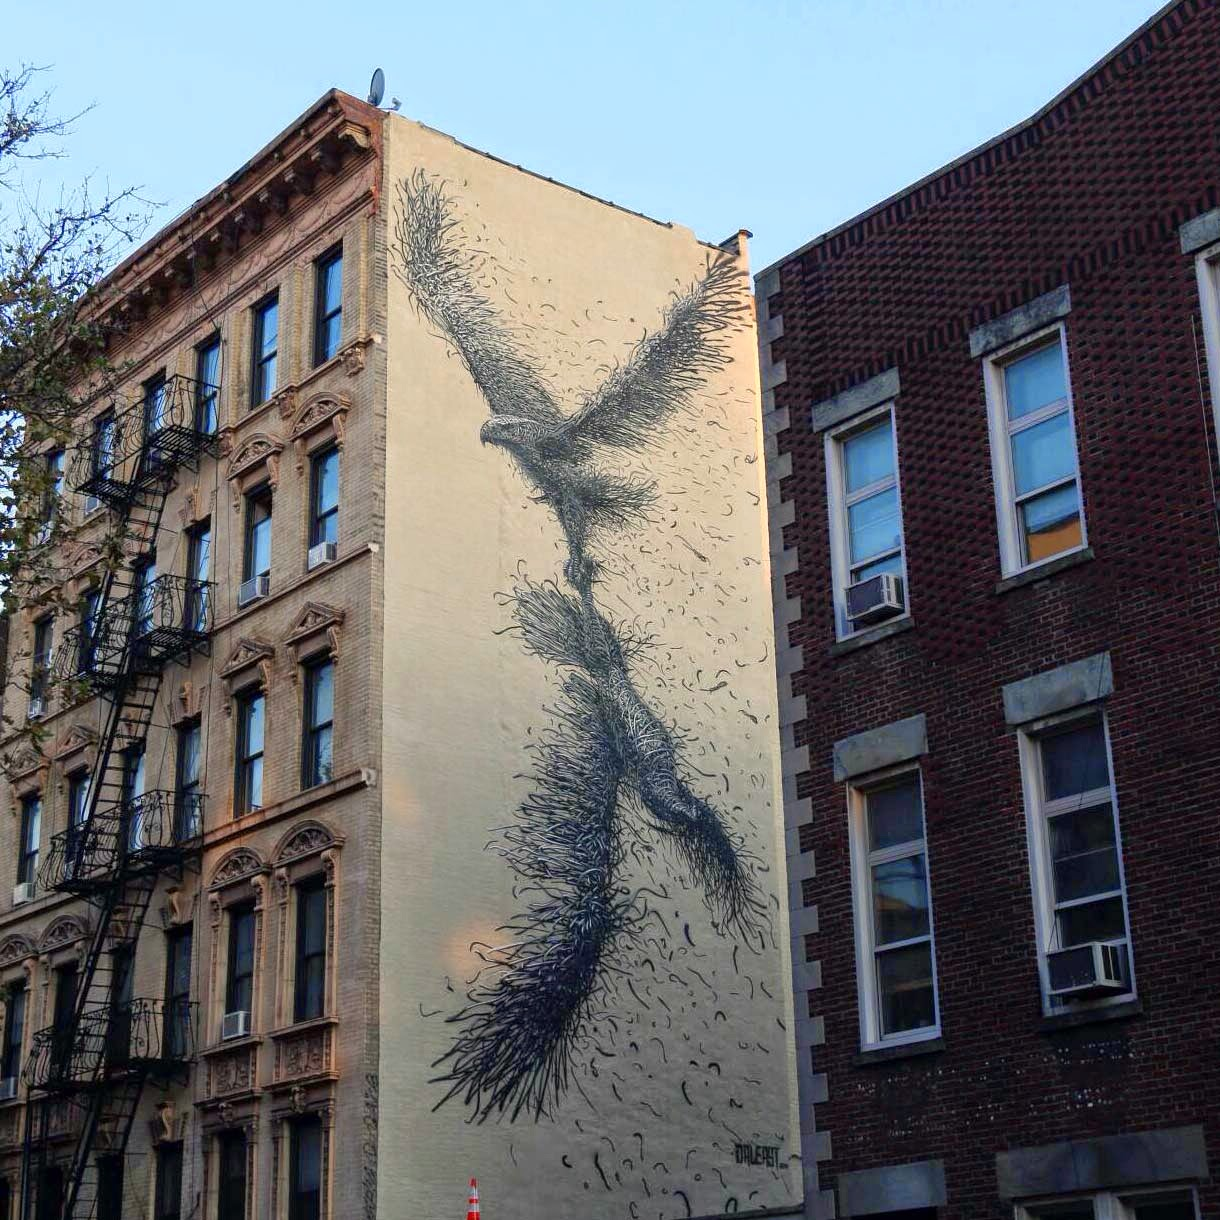 The Chinese painter DALeast is currently in New York City where he just finished working on this new mural in Manhattan.